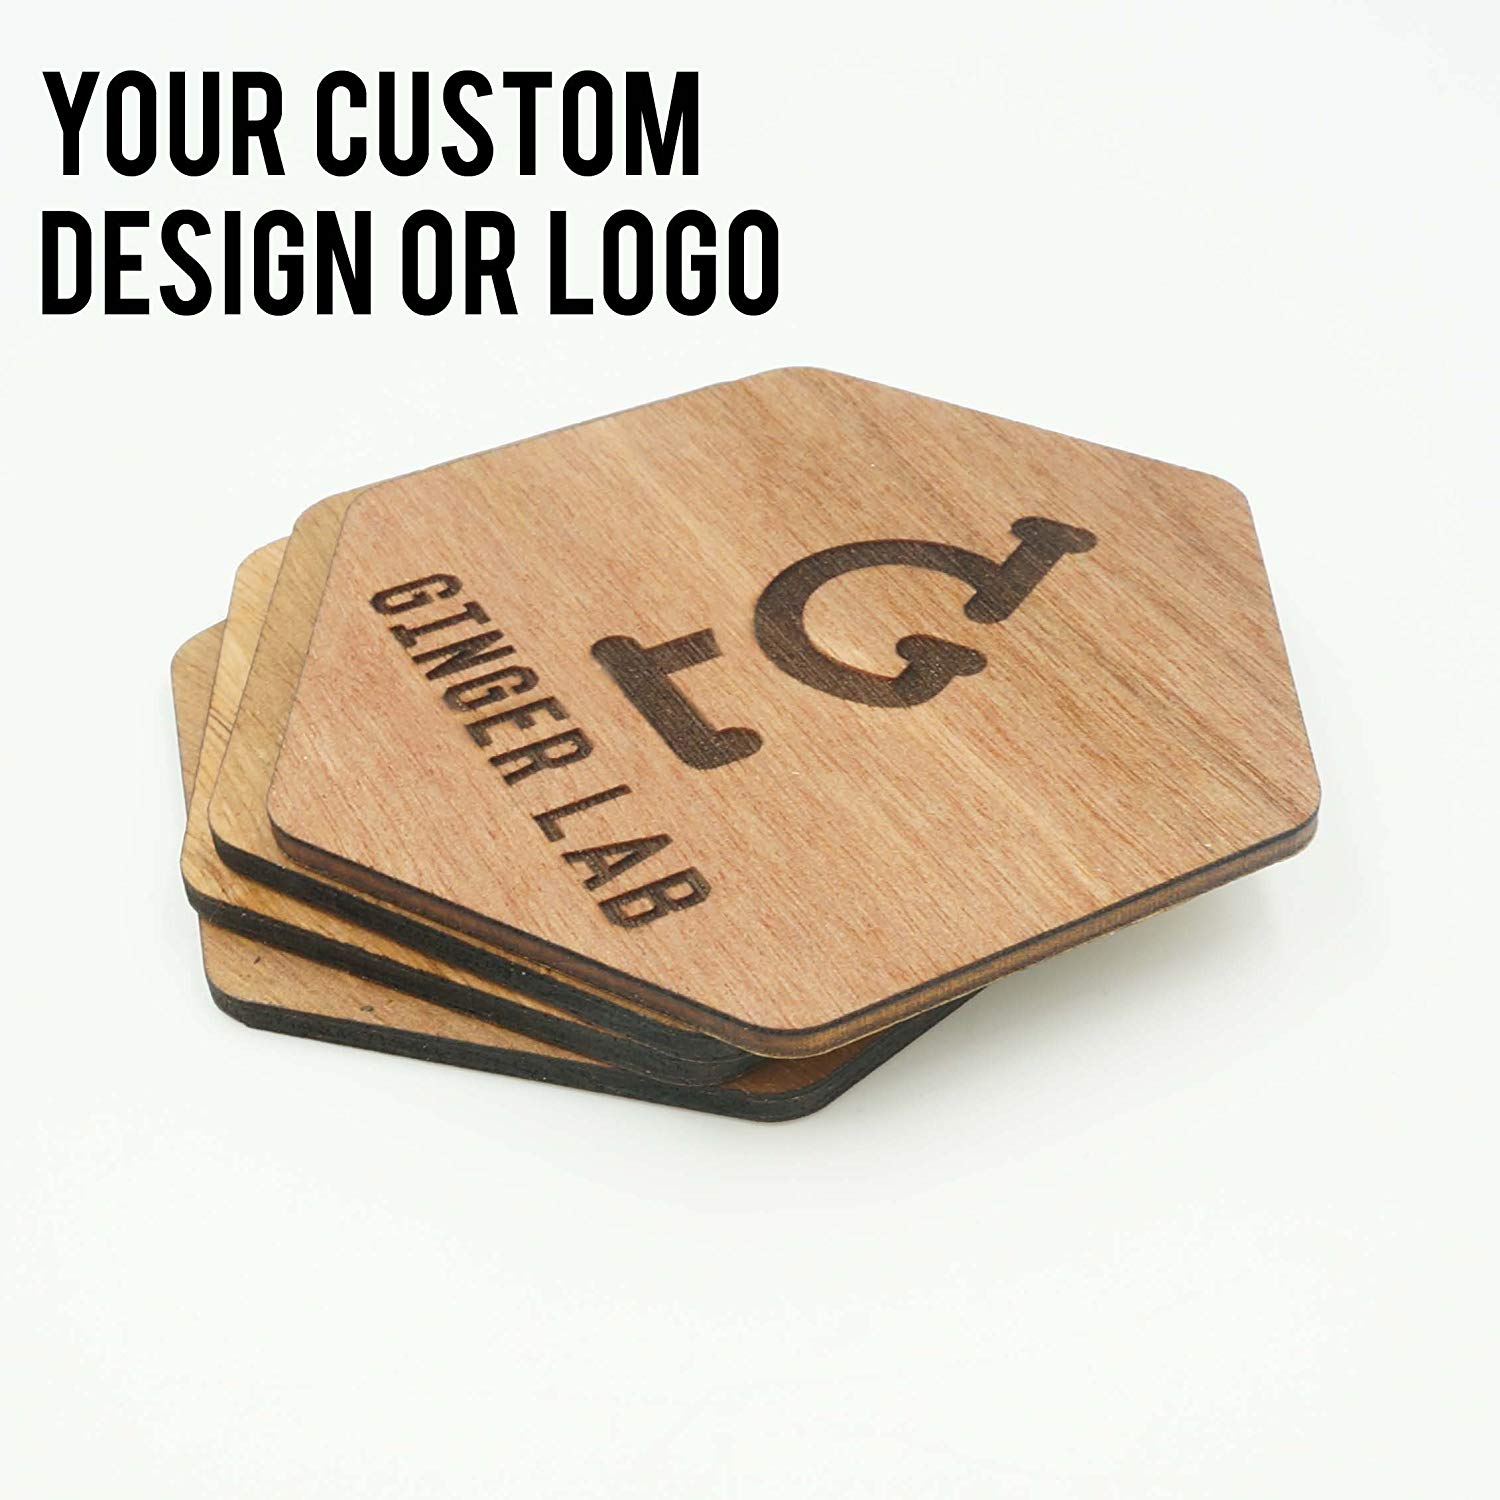 Custom Modern Hexagon Wooden Coasters Company Logo Design Your Design Wedding Coasters Personalized Engraved Cut Drink Holders Whiskey Gift Idea